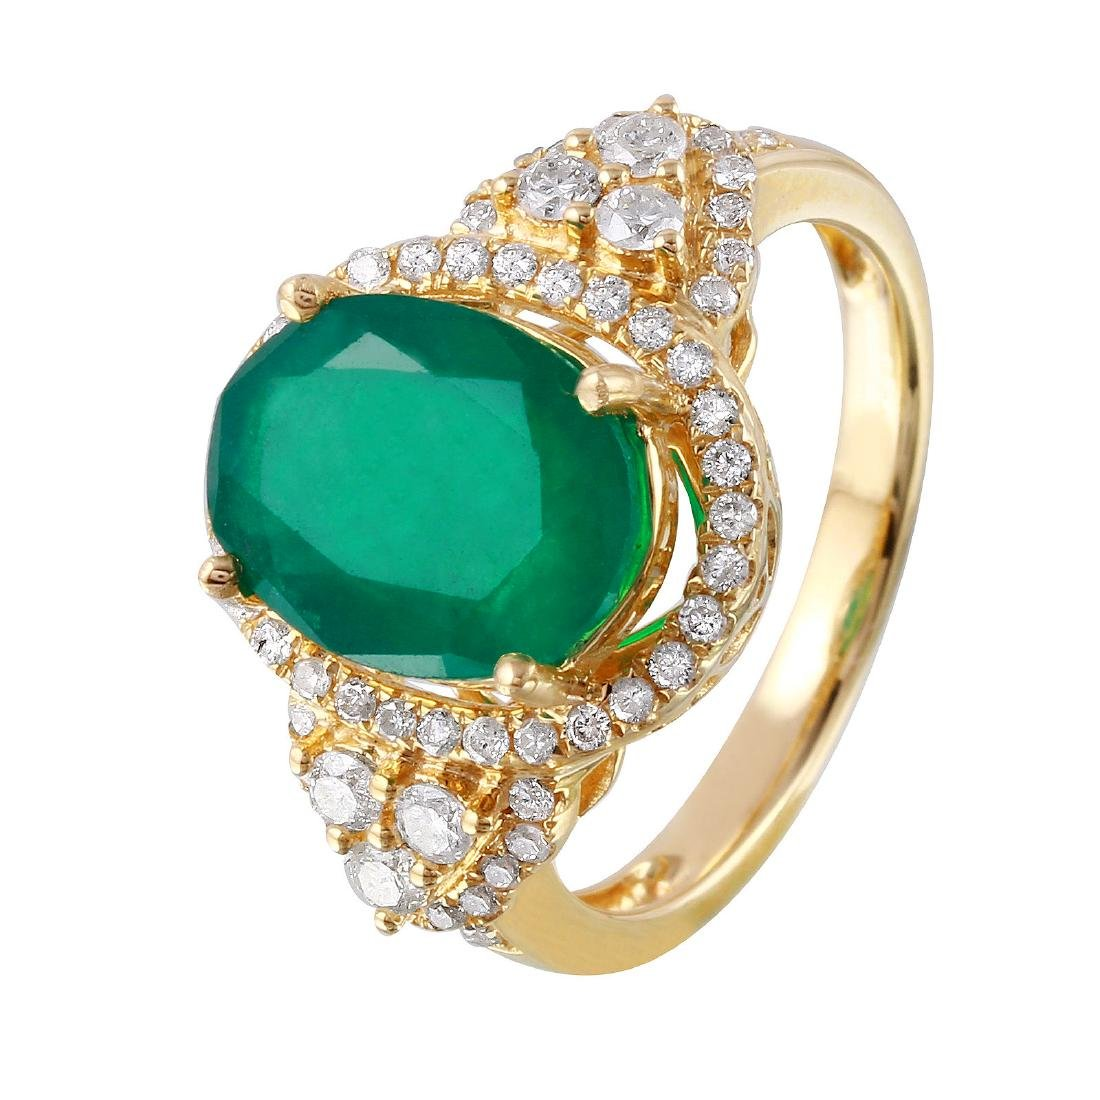 14KT Yellow Gold 3.83ctw Emerald Diamond Cocktail Ring